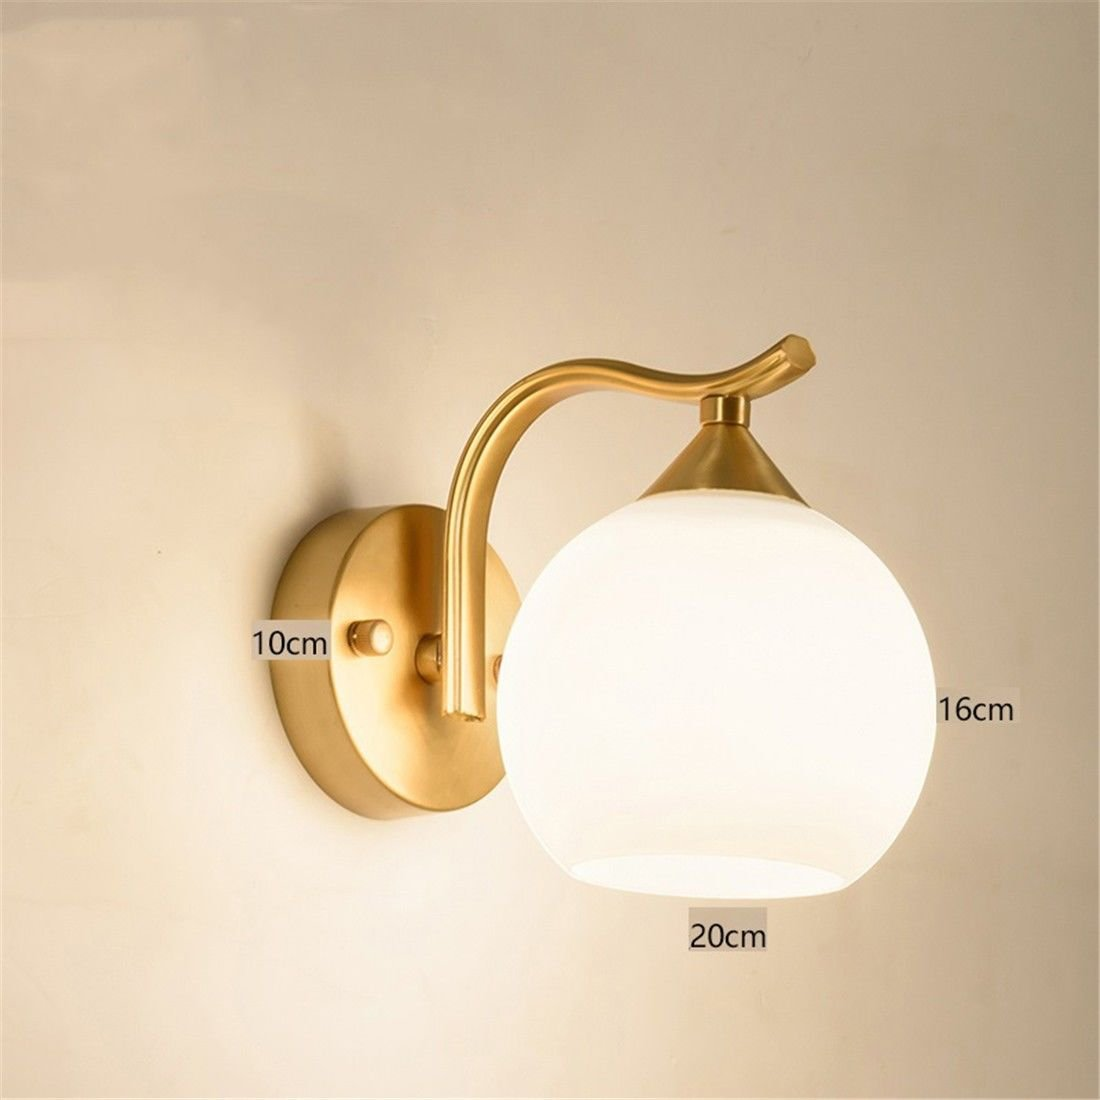 Industrial Vintage Wall Sconces The Head of The Bed Brass Wall Lights  Antique Wall Lamps Hotel Room corridors Hyun Off The Road Wall lamp - -  Amazon.com